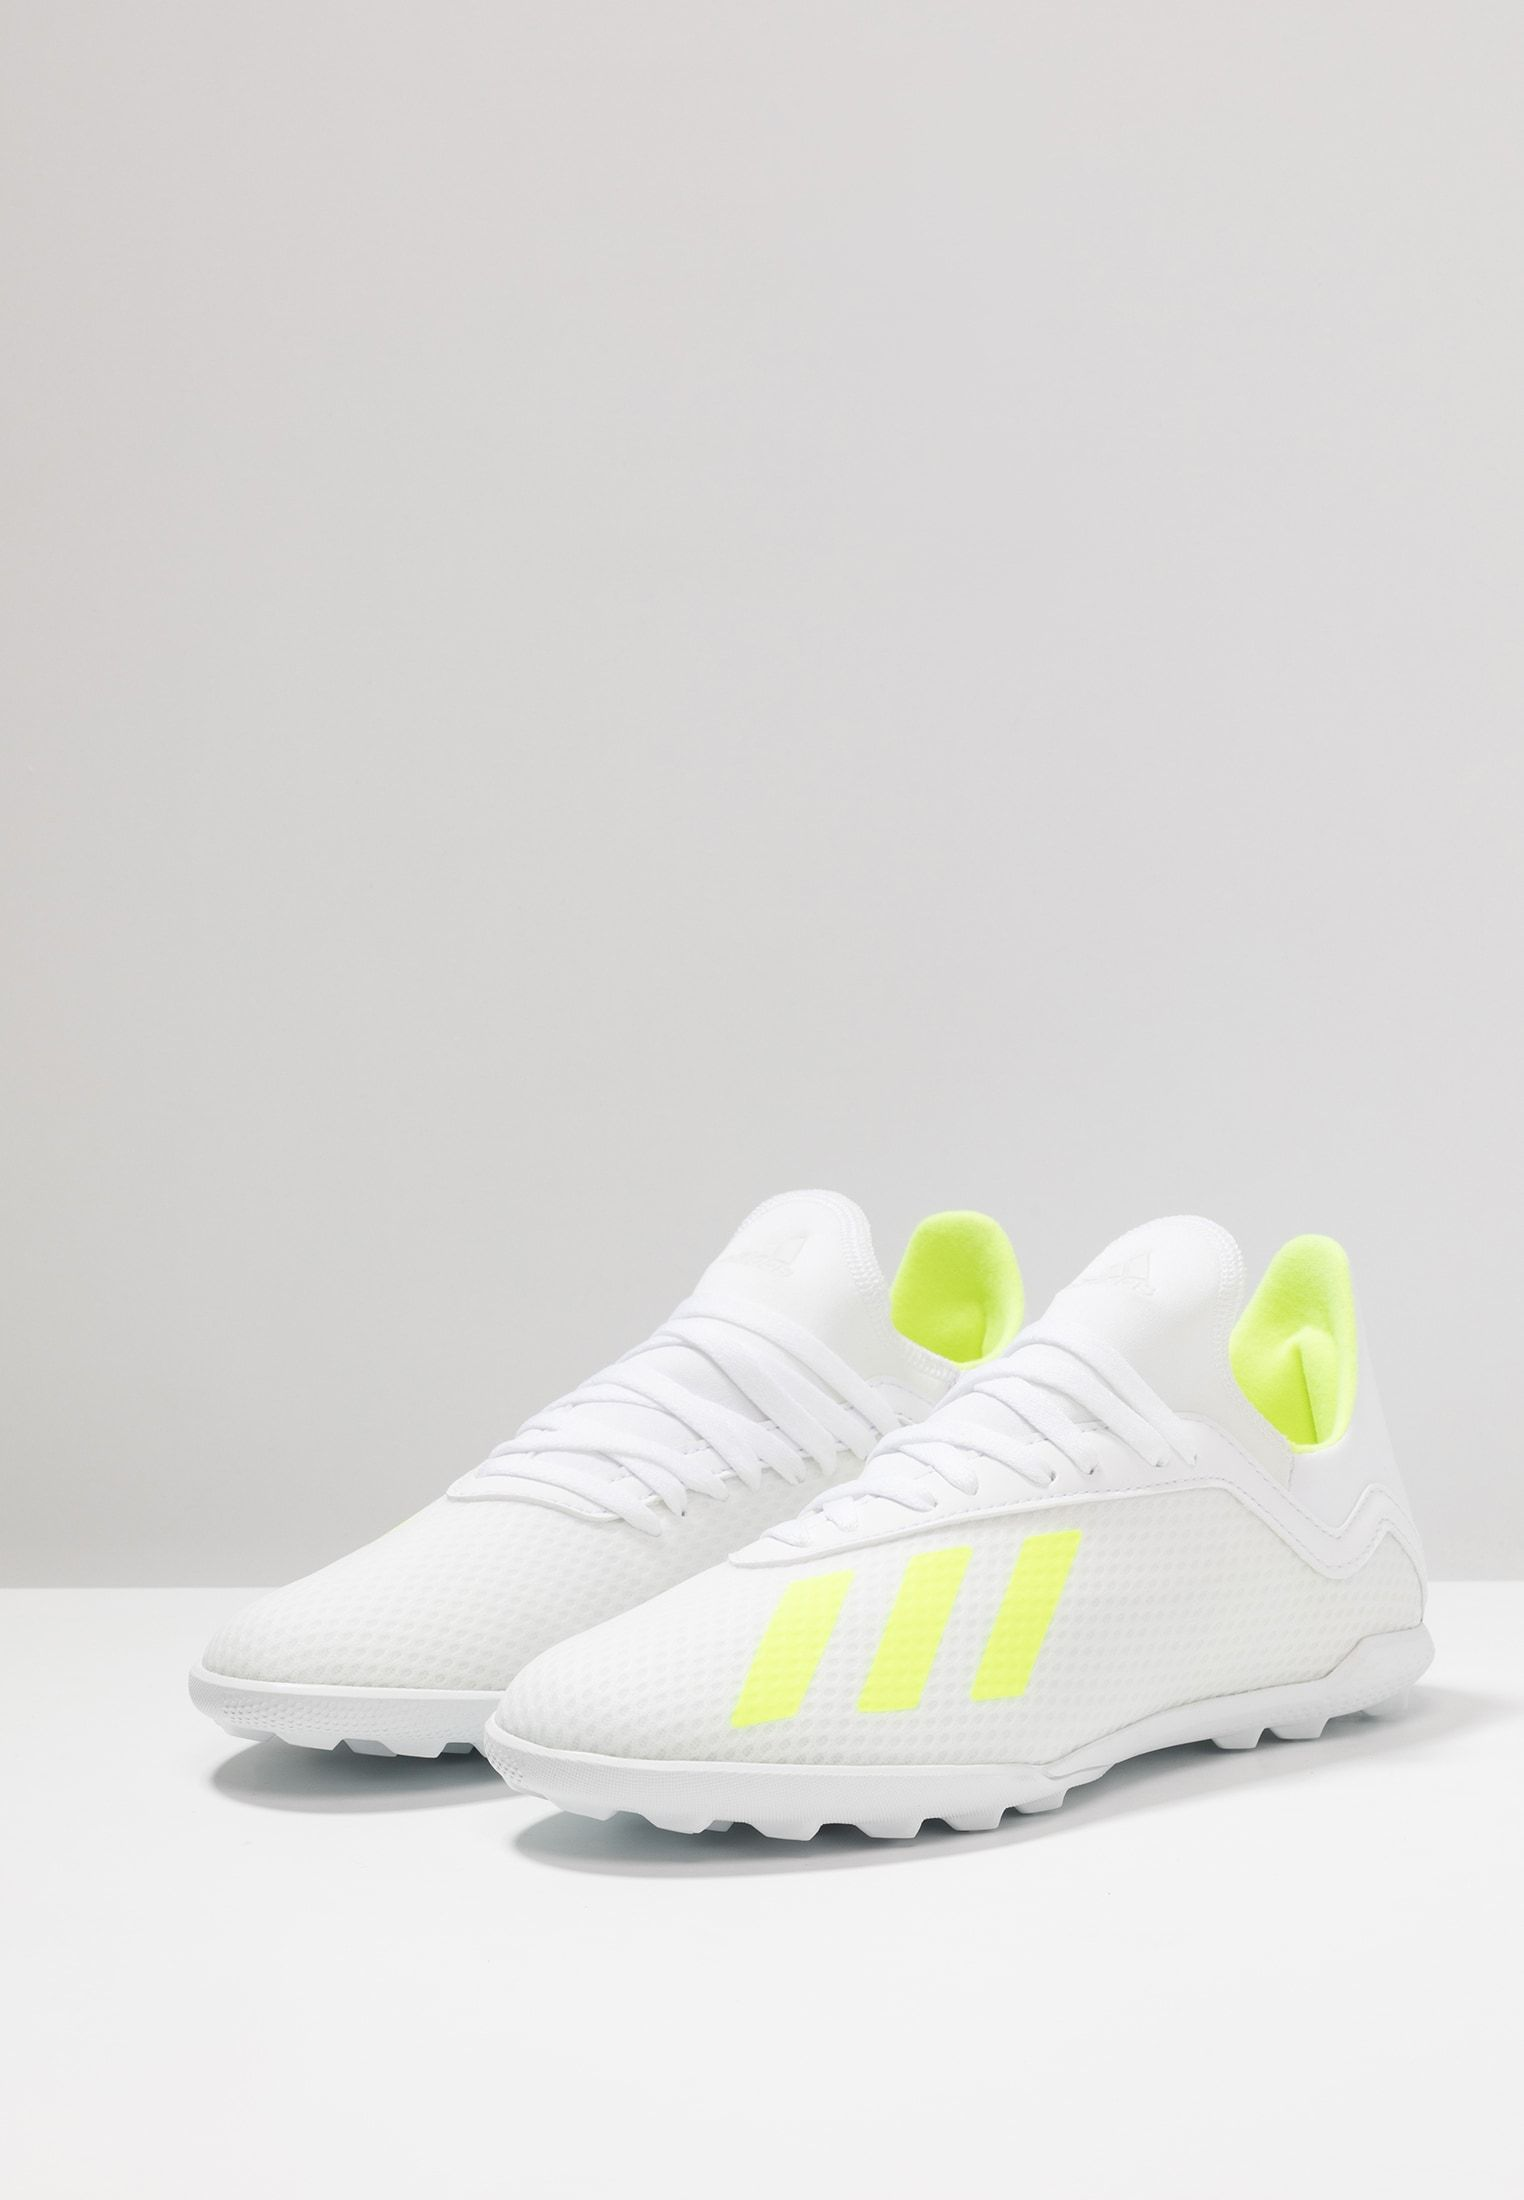 4636d3973a4 adidas Performance X 18.3 TF - Botas de fútbol multitacos - footwear  white/solar yellow